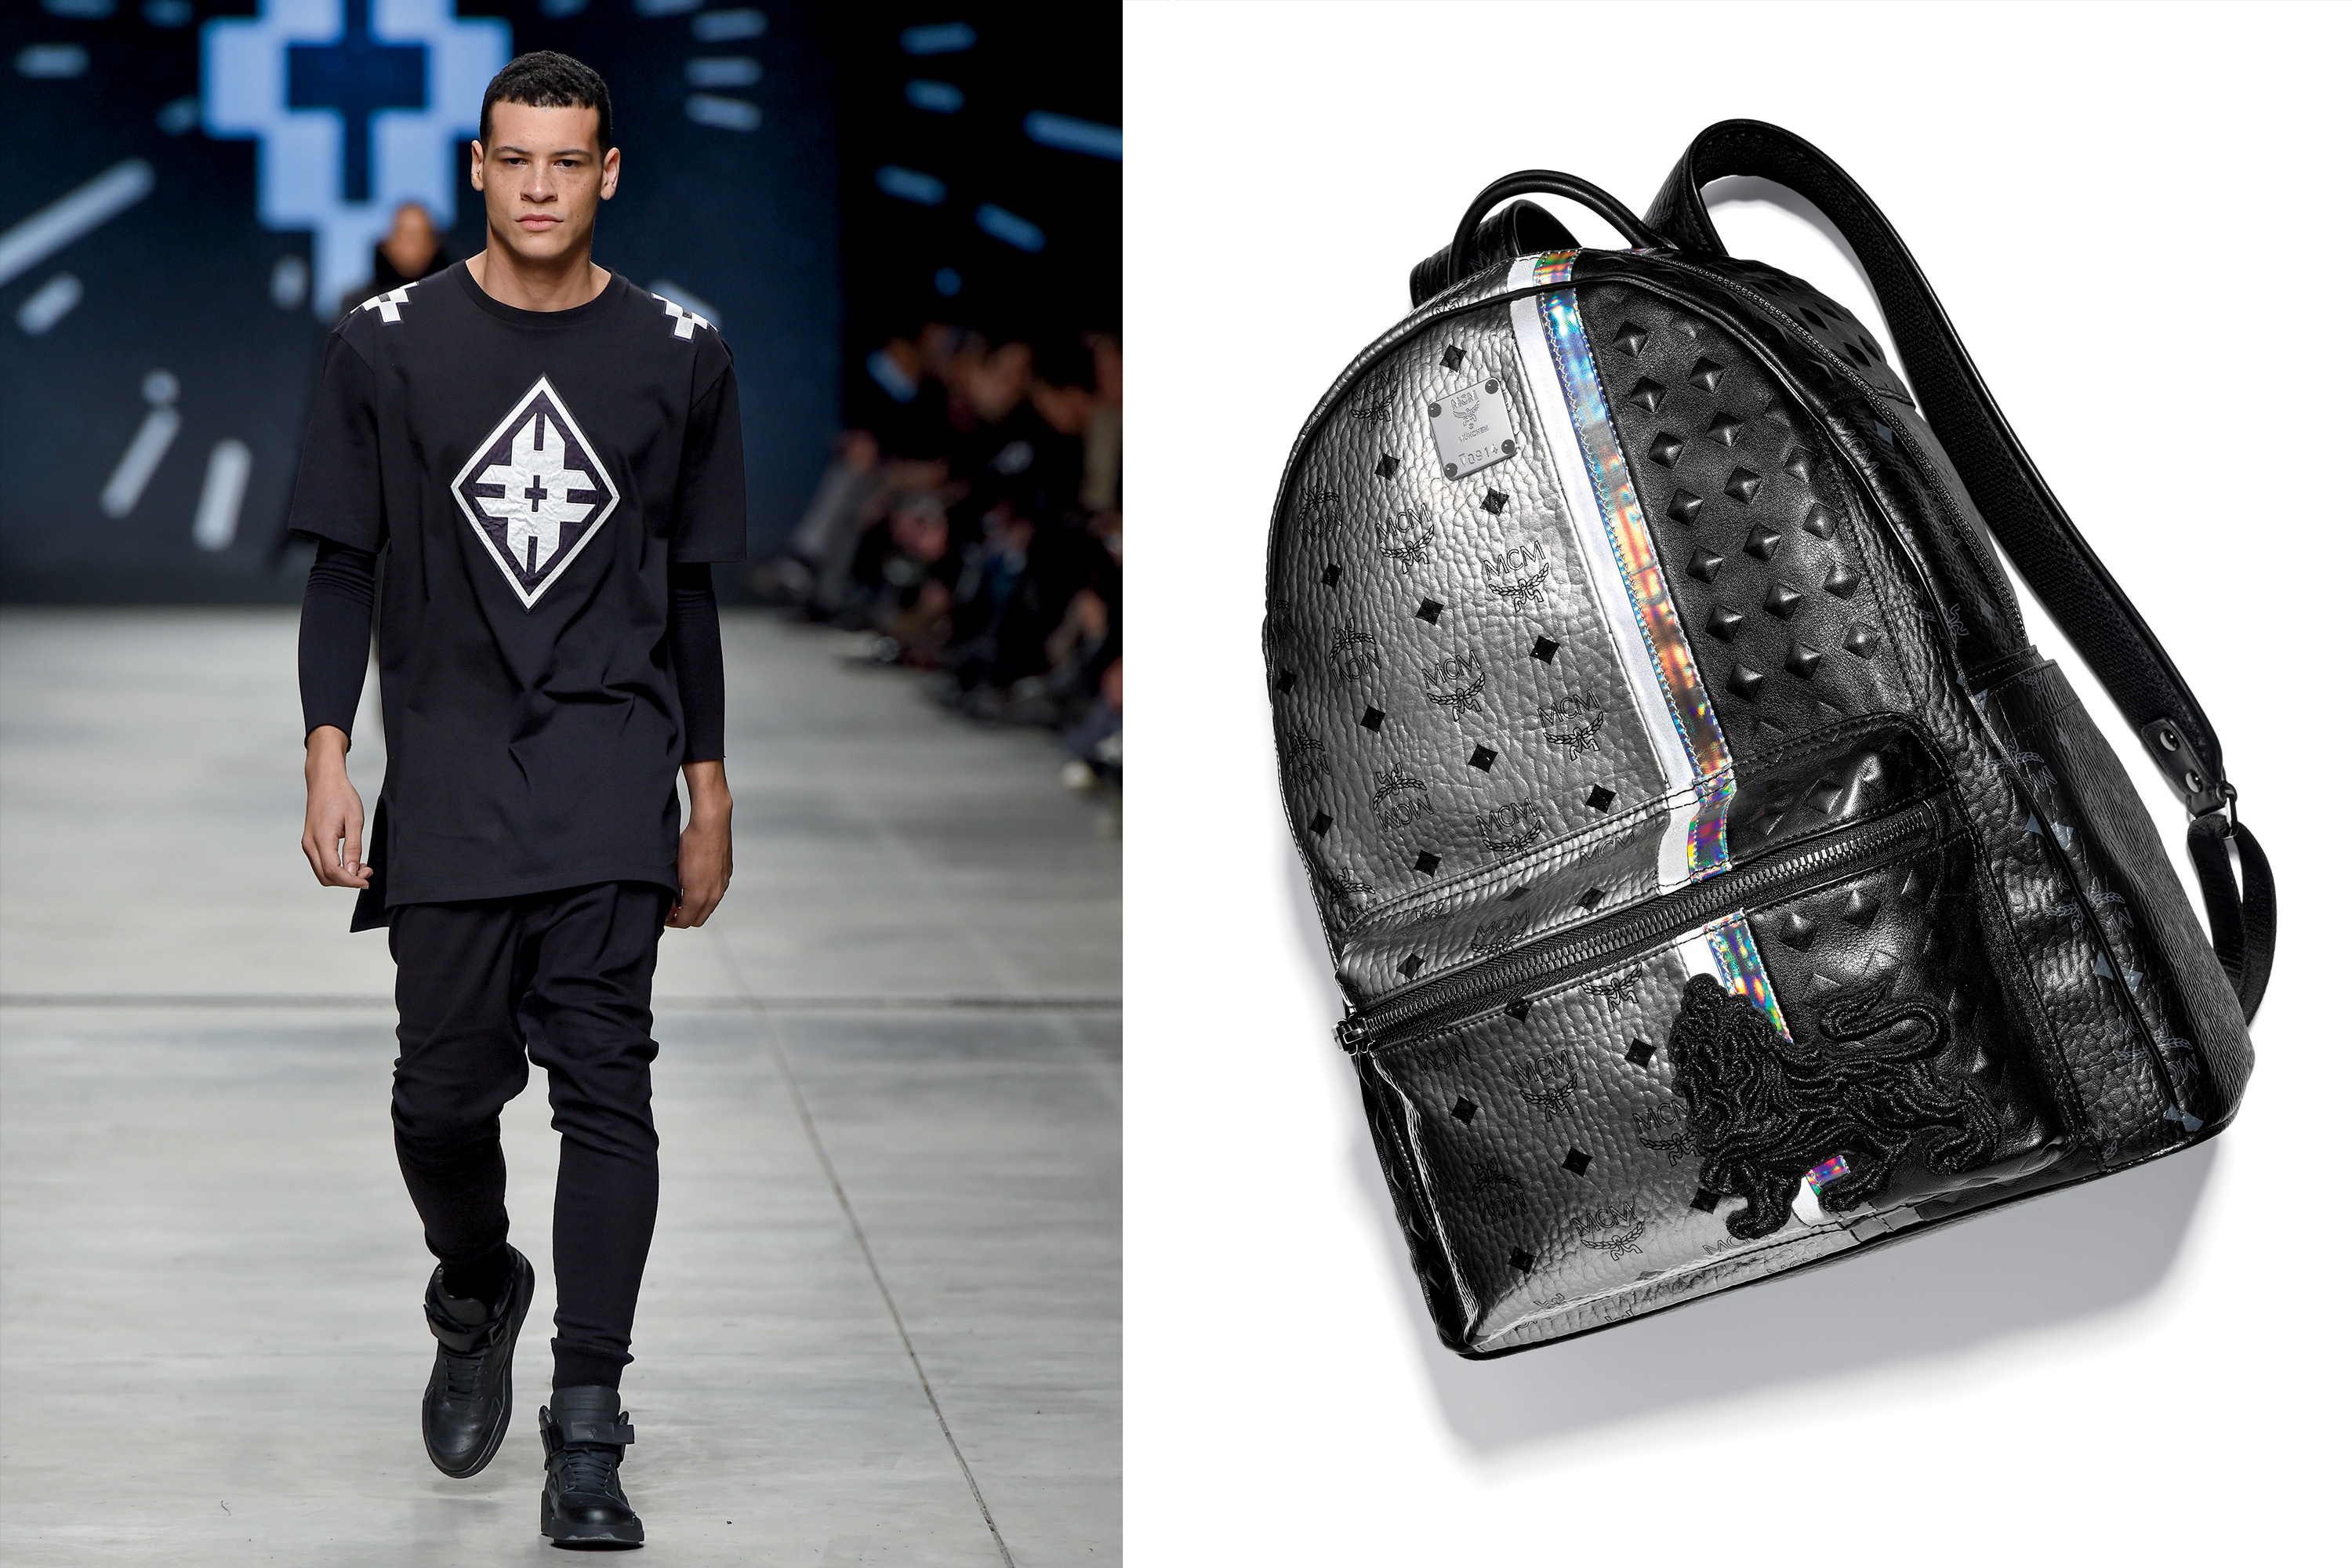 Left: Jimmy Choo Patent Leather Monk-Strap Shoes, $825; Right:MCM Munich Lion Coated Canvas Backpack, $1295